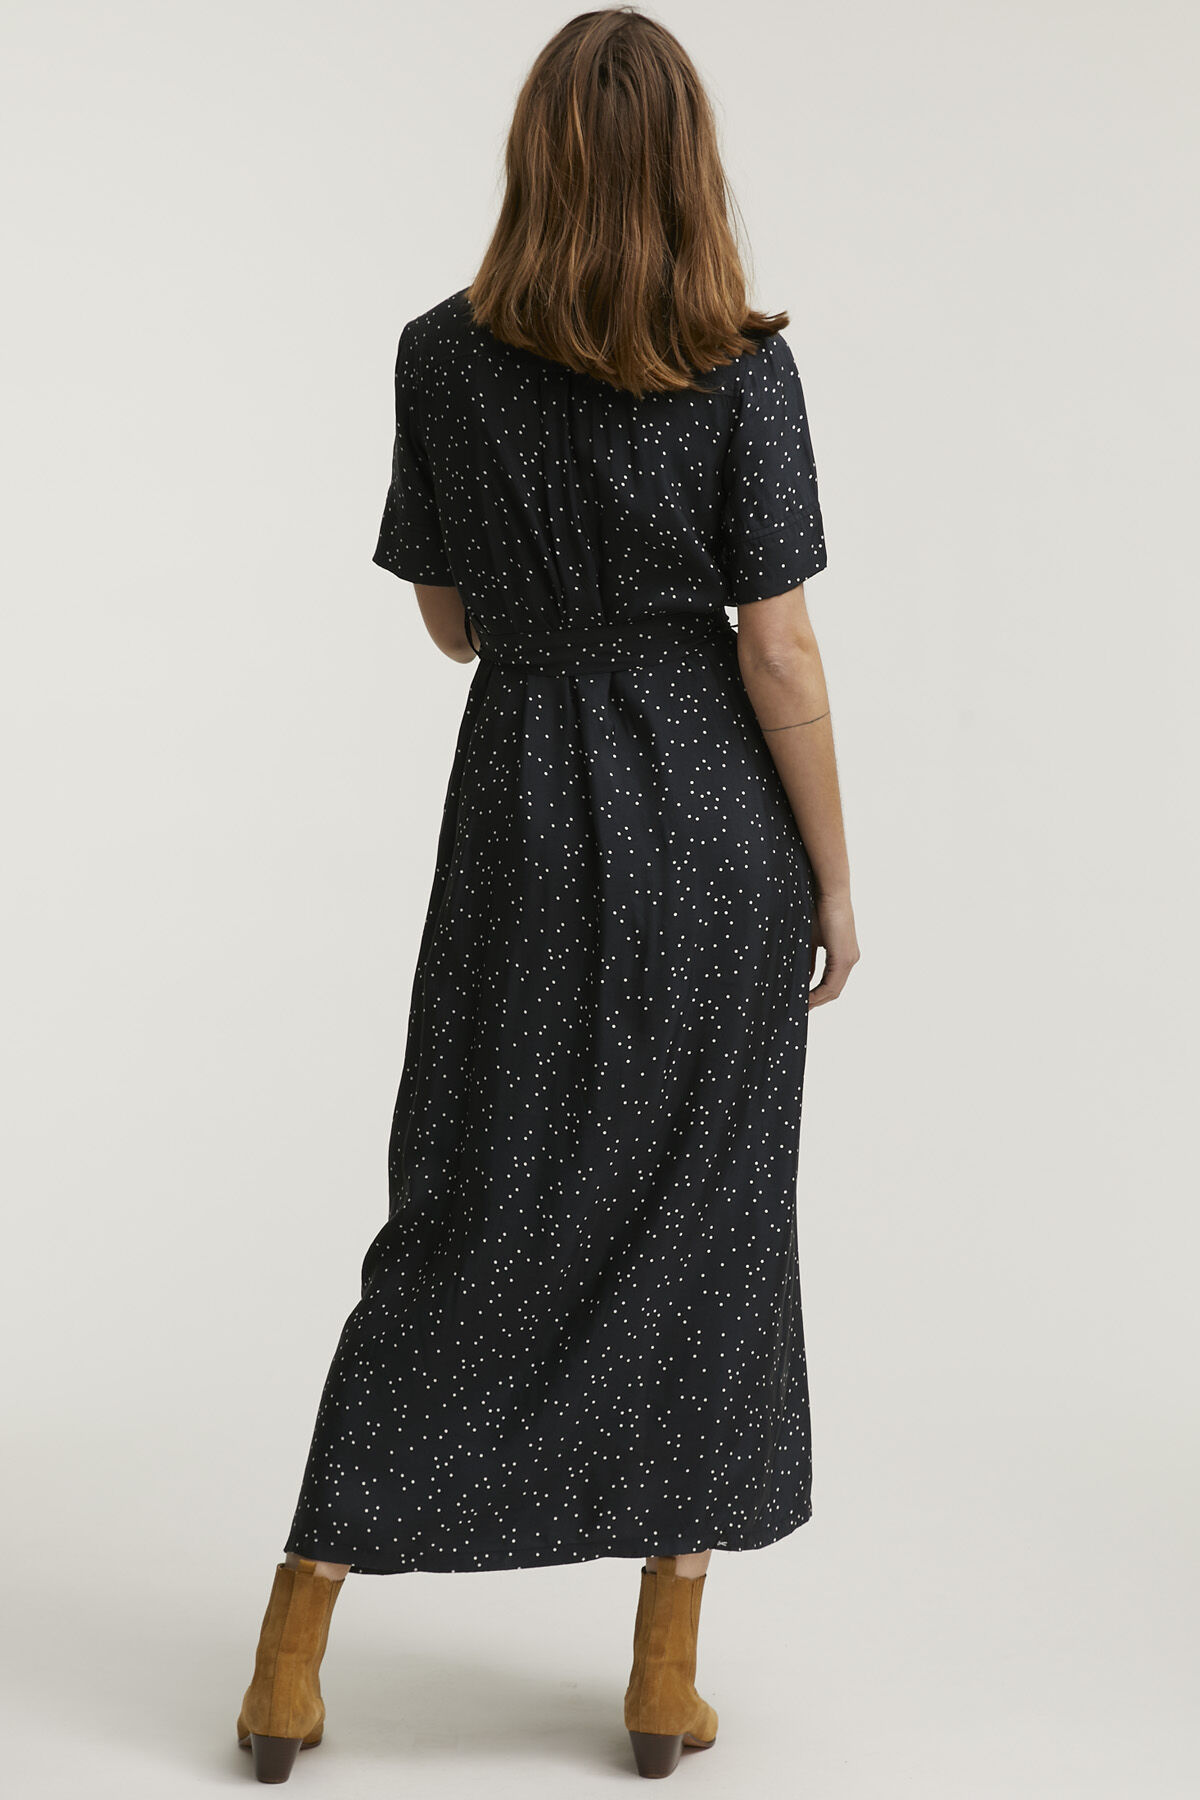 DENISE DRESS Essential Cupro Blend - Maxi